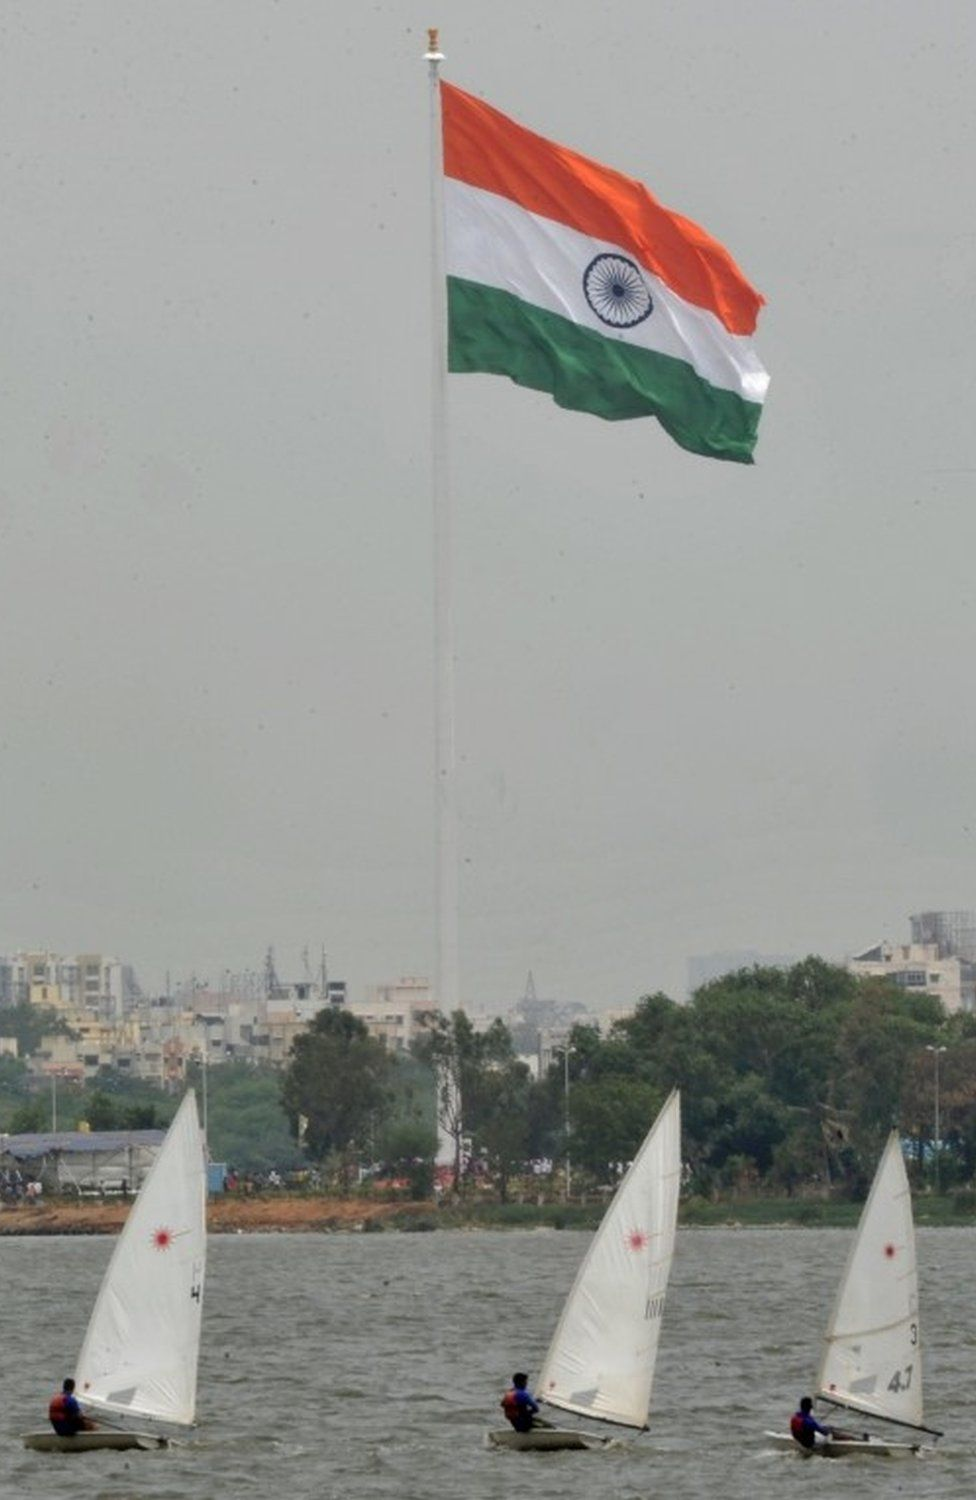 Indians sail boats as an Indian Tricolour flag flutters on an 83 metre (272.31 feet) flagpole after being unfurled during a ceremony to mark the Second Telangana State Formation Day at Sanjeevaiah Park on the banks of the Hussainsagar Lake in Hyderabad on June 2, 2016. T